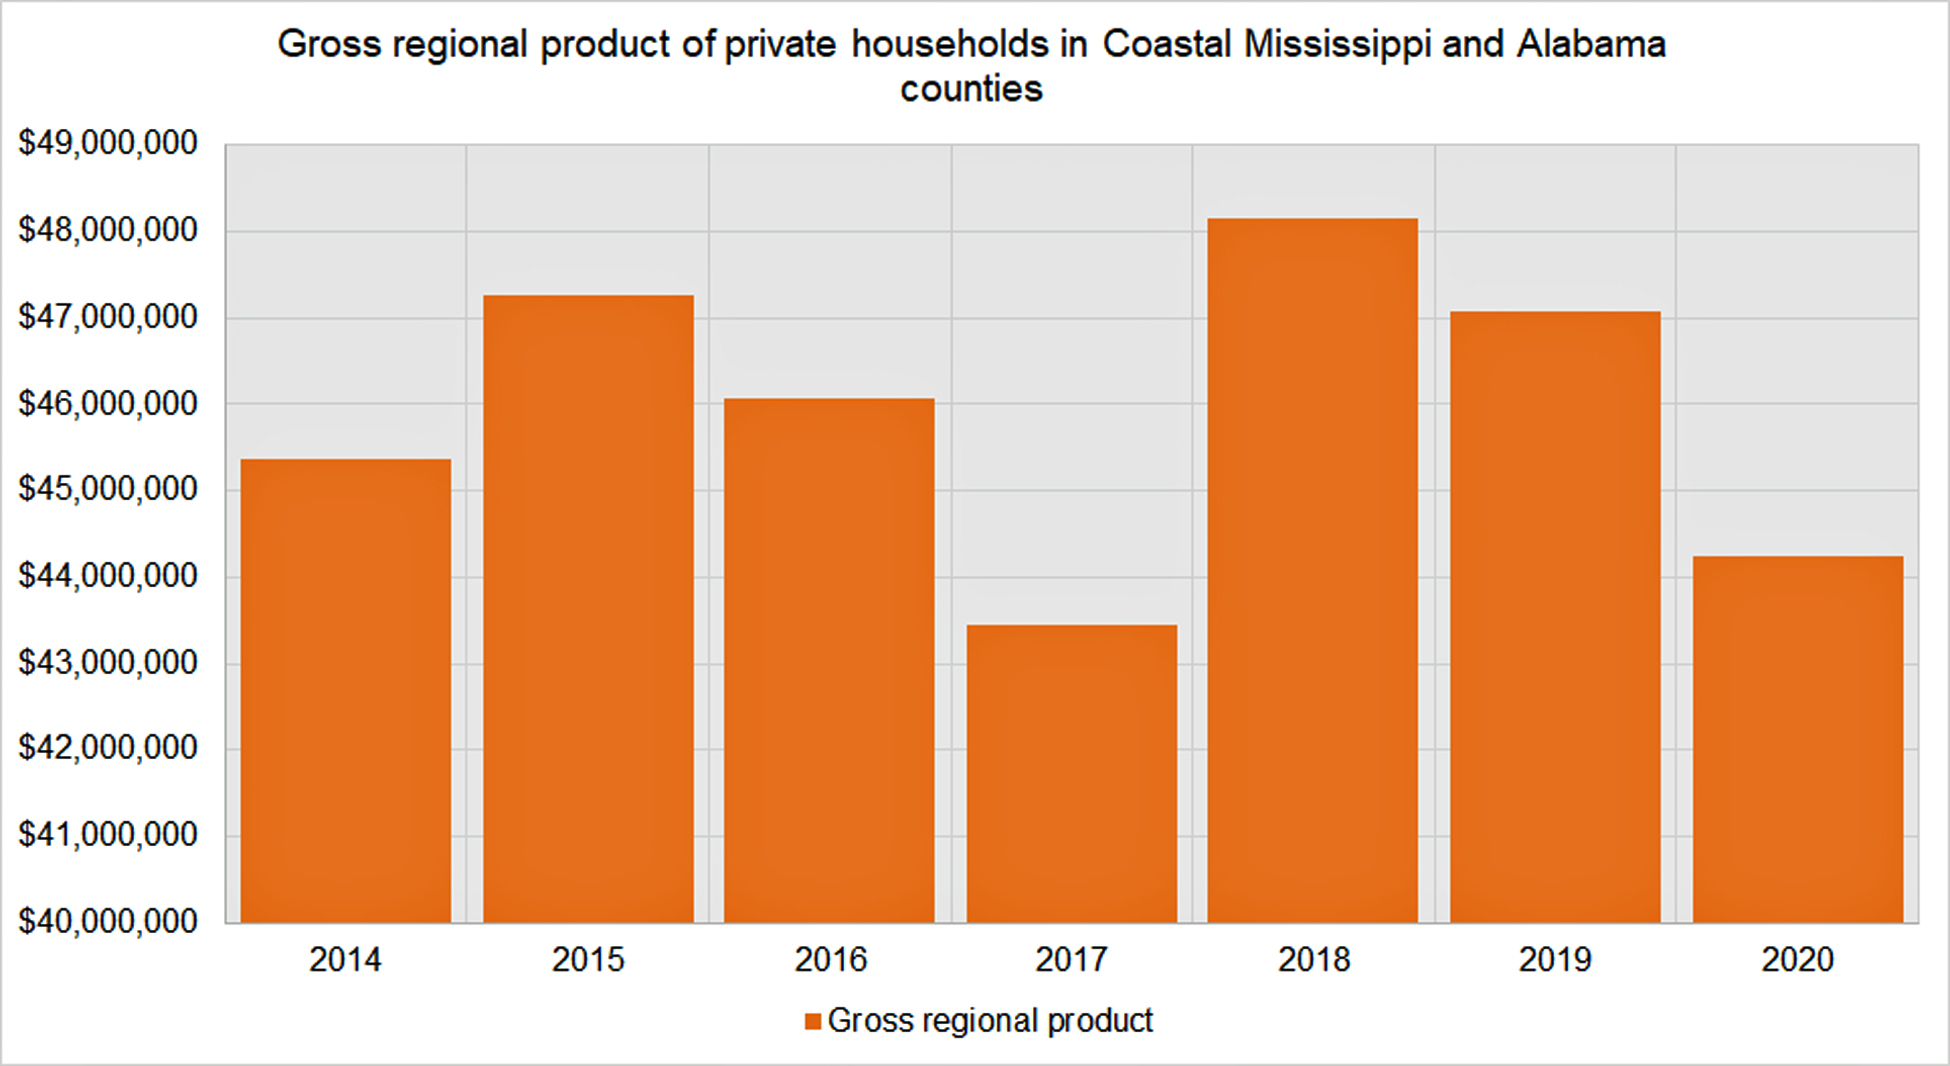 gross_regional_product_of_private_households_in_coastal_ms_and_al.jpg